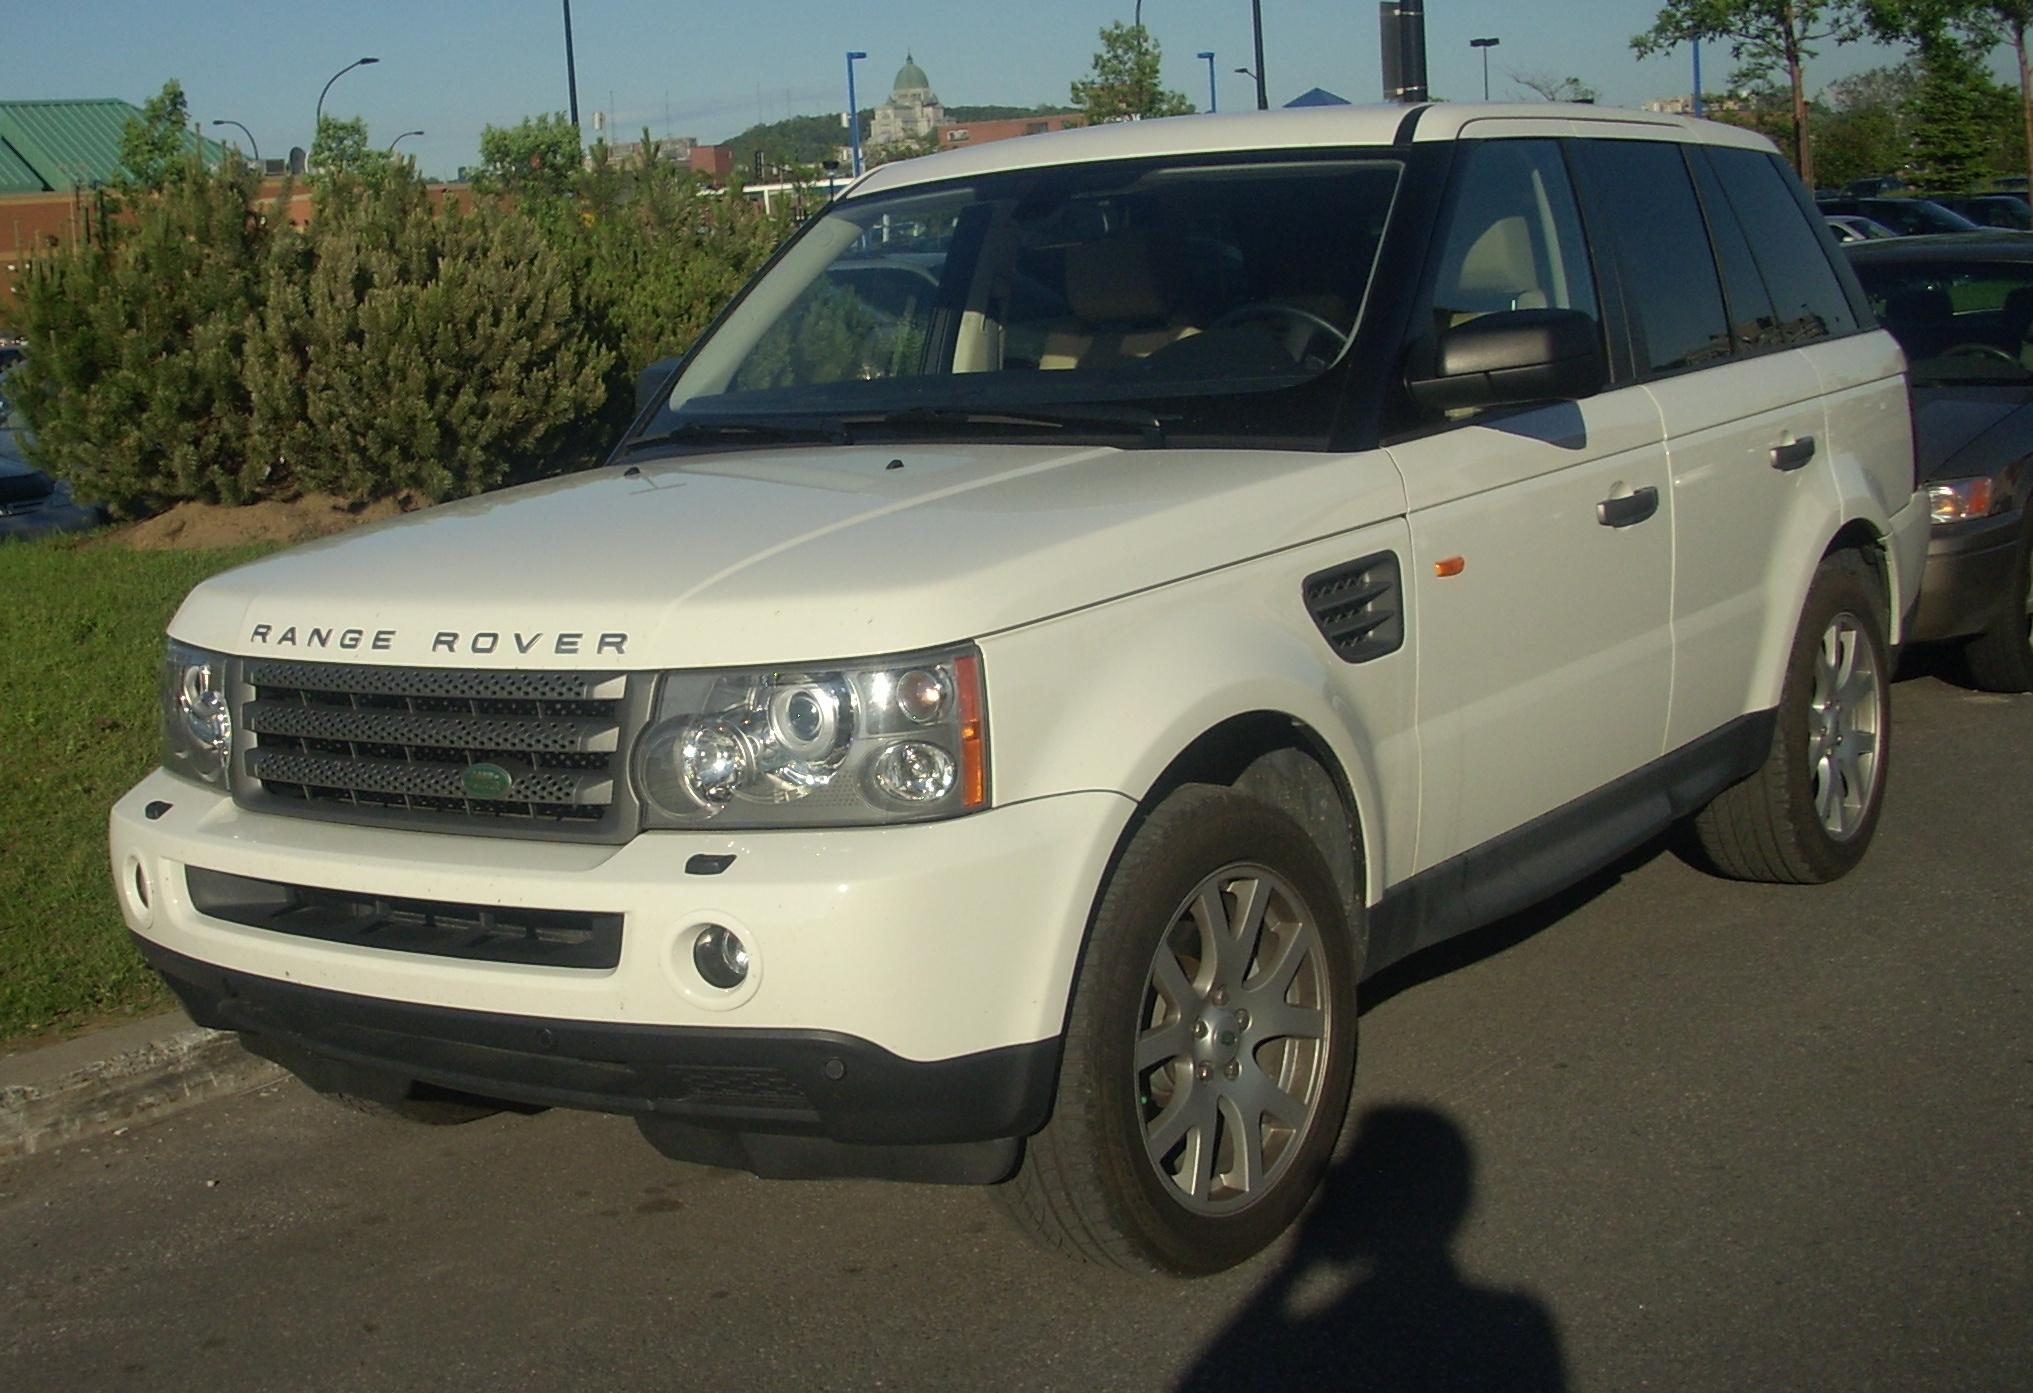 Explore furthermore Remotecontrolcar moreover File Land Rover Range Rover as well Vehicular Swing Gate moreover 2011Mazda2. on car remote